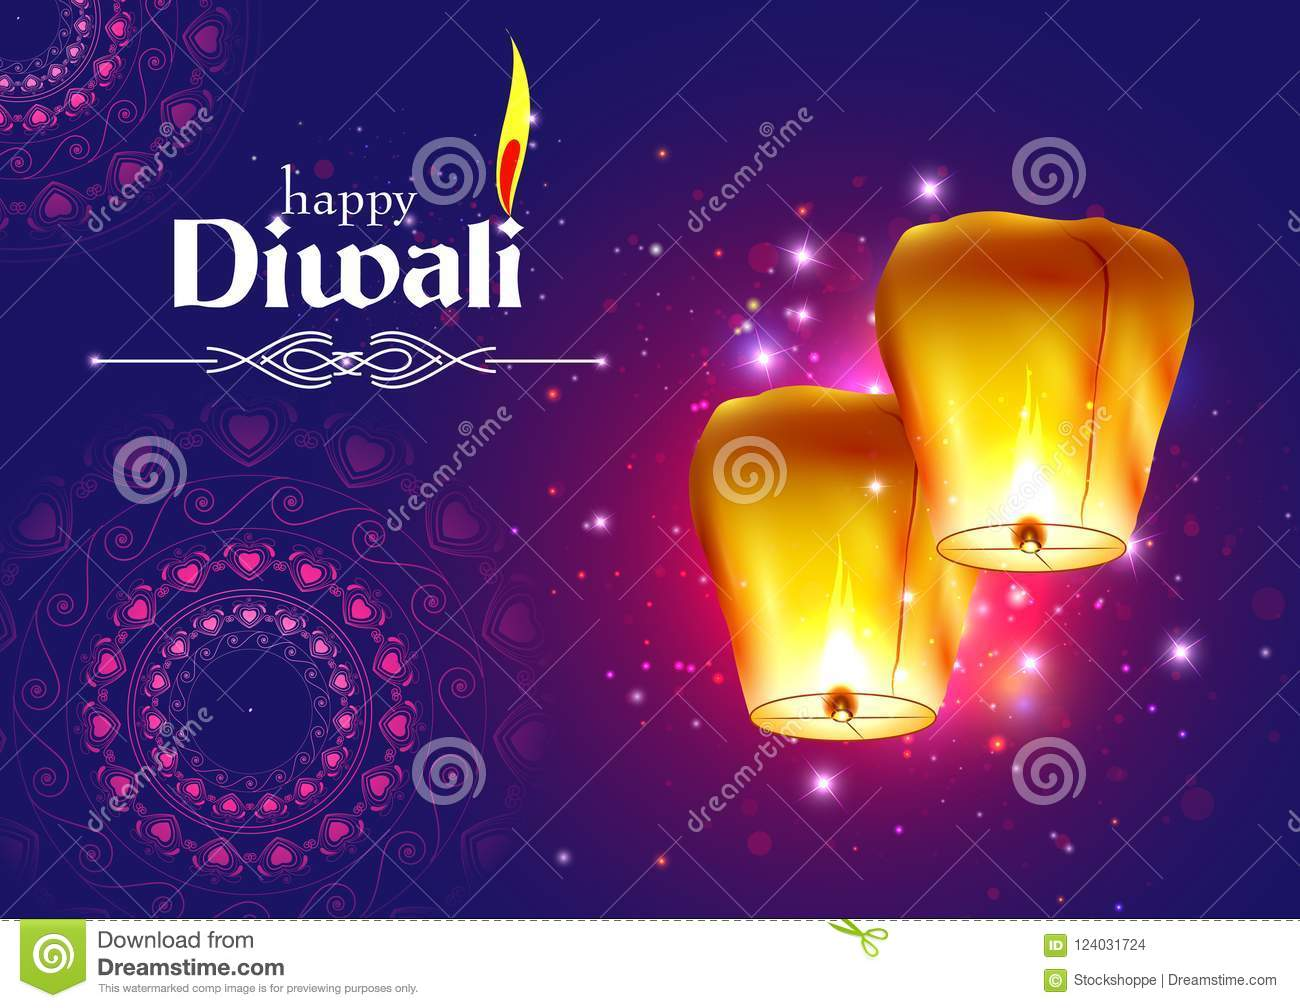 Decorated Floating Sky Lamp For Happy Diwali Festival Holiday